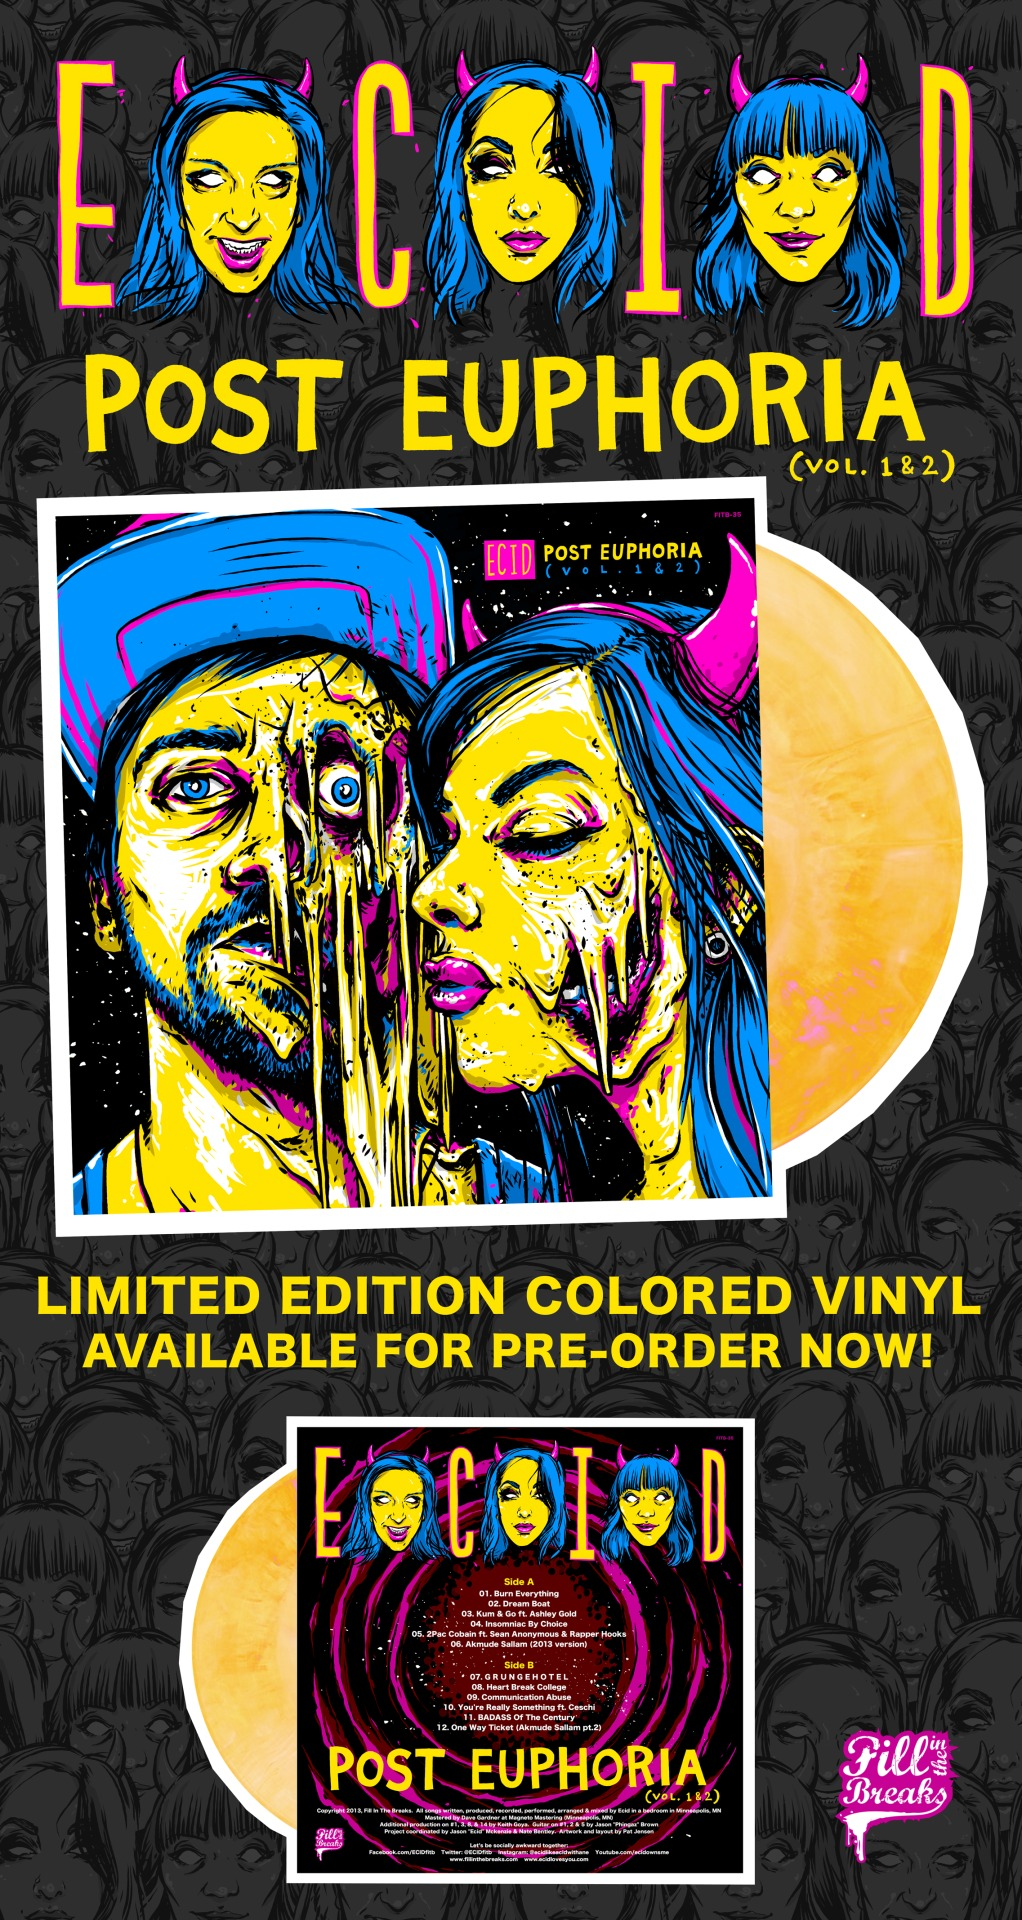 POST EUPHORIA 1 & 2 COLORED VINYL AVAILABLE FOR PRE-ORDER NOW!   There are 3 radical options to choose from!    CLICK HERE TO ORDER YOUR COPY